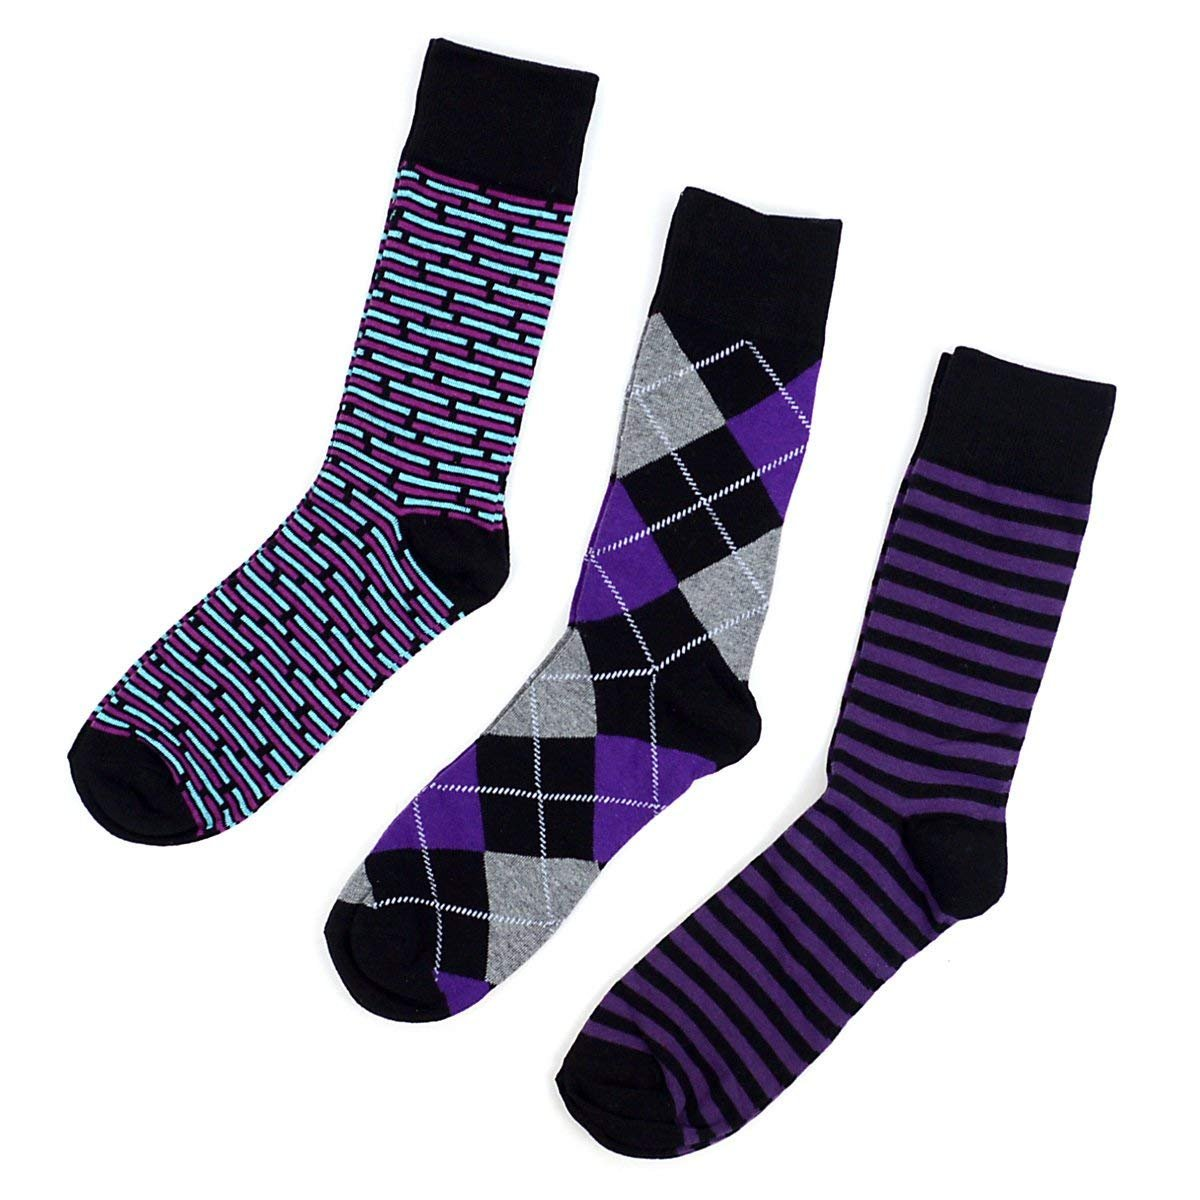 8199bf31ba9a Men's Purple Multi Design Fancy Dress Socks - BOXED GIFTS